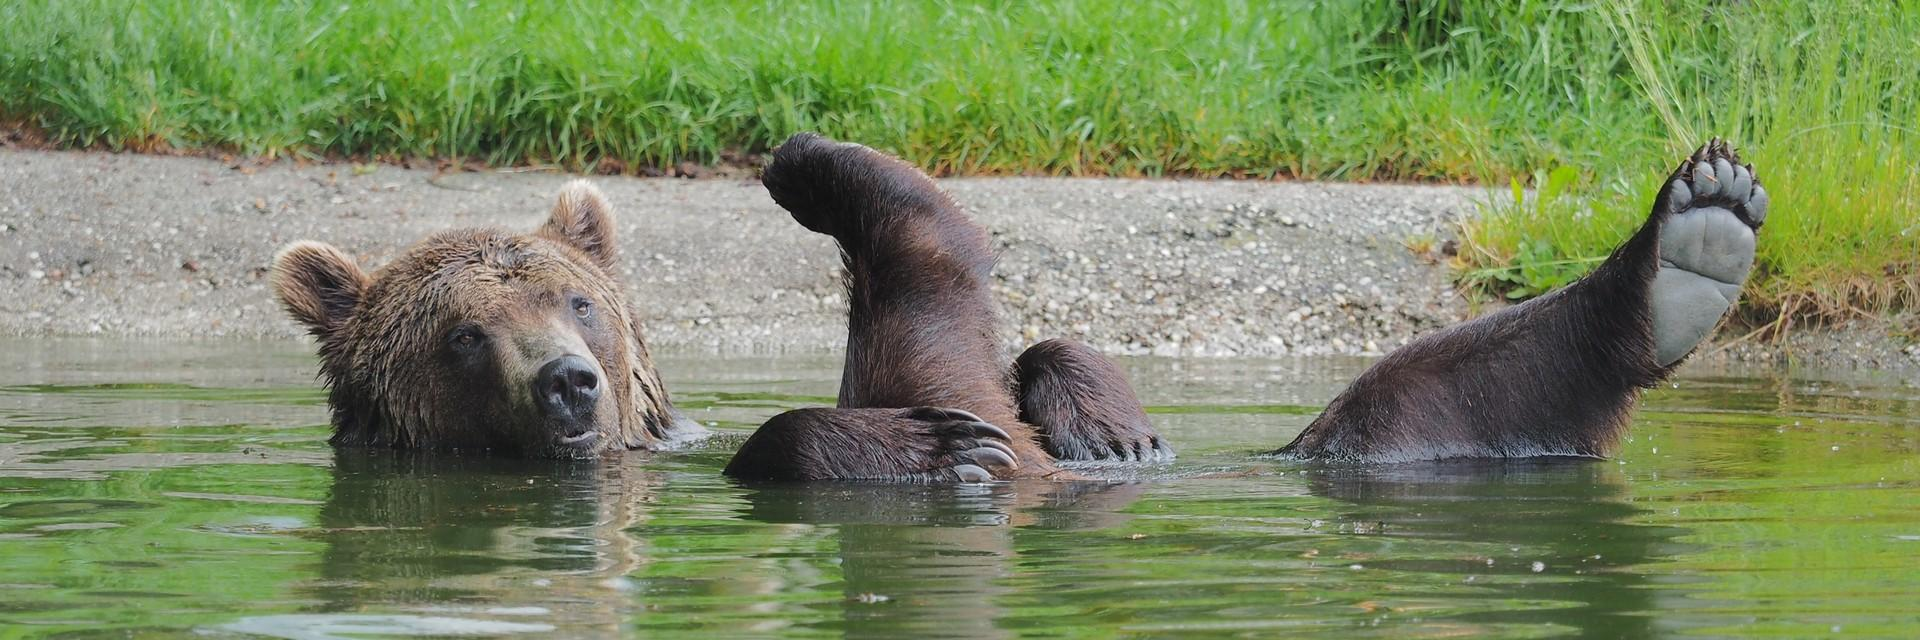 brown bear relaxed in the water stretches its legs out of the water